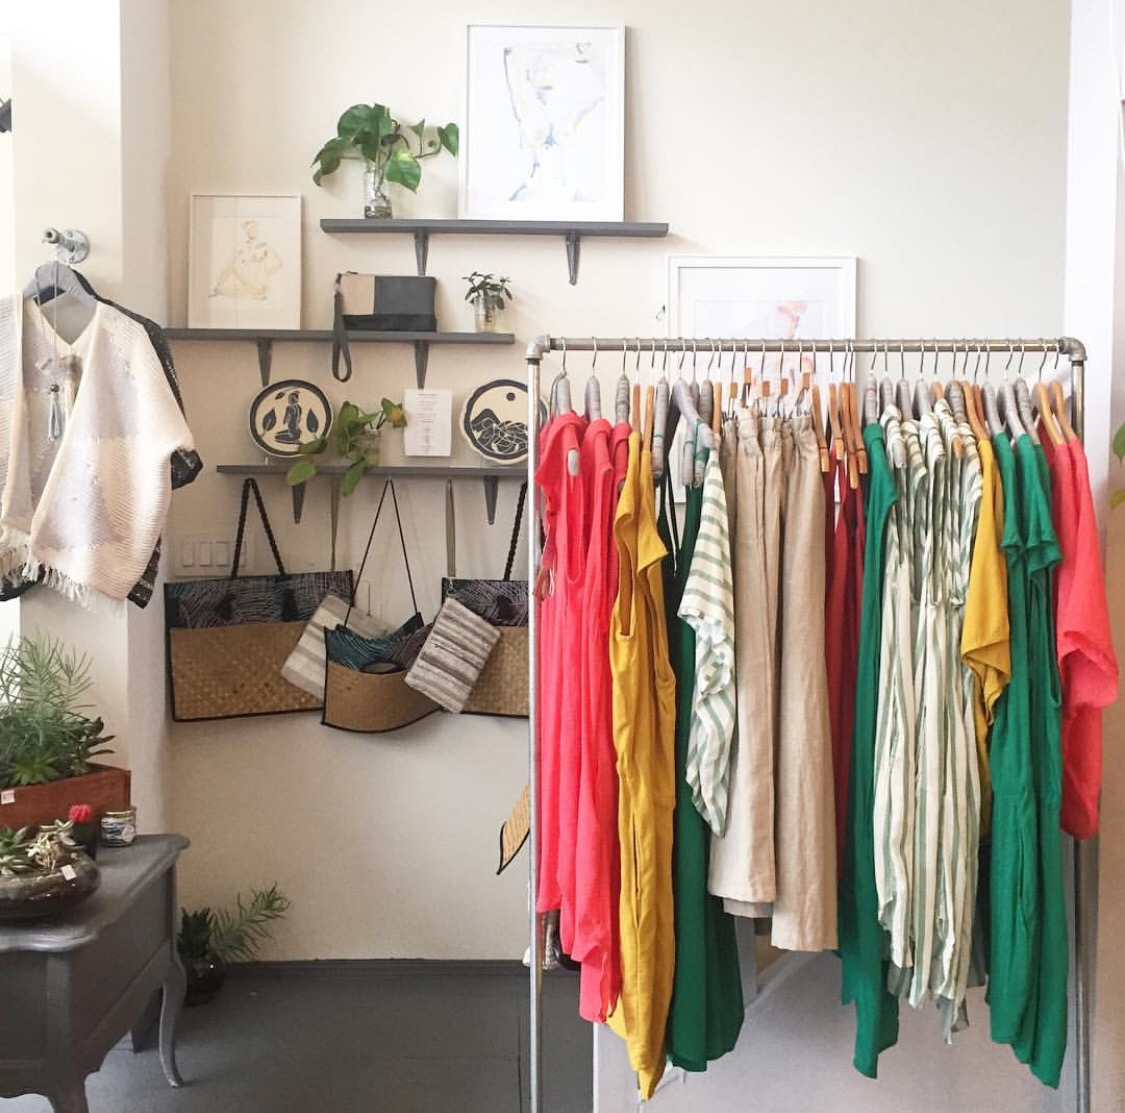 tonlé - We're a zero waste, ethical fashion brand on a big mission, to reduce waste generated by larger factories and change the way business is done in the fashion industry.